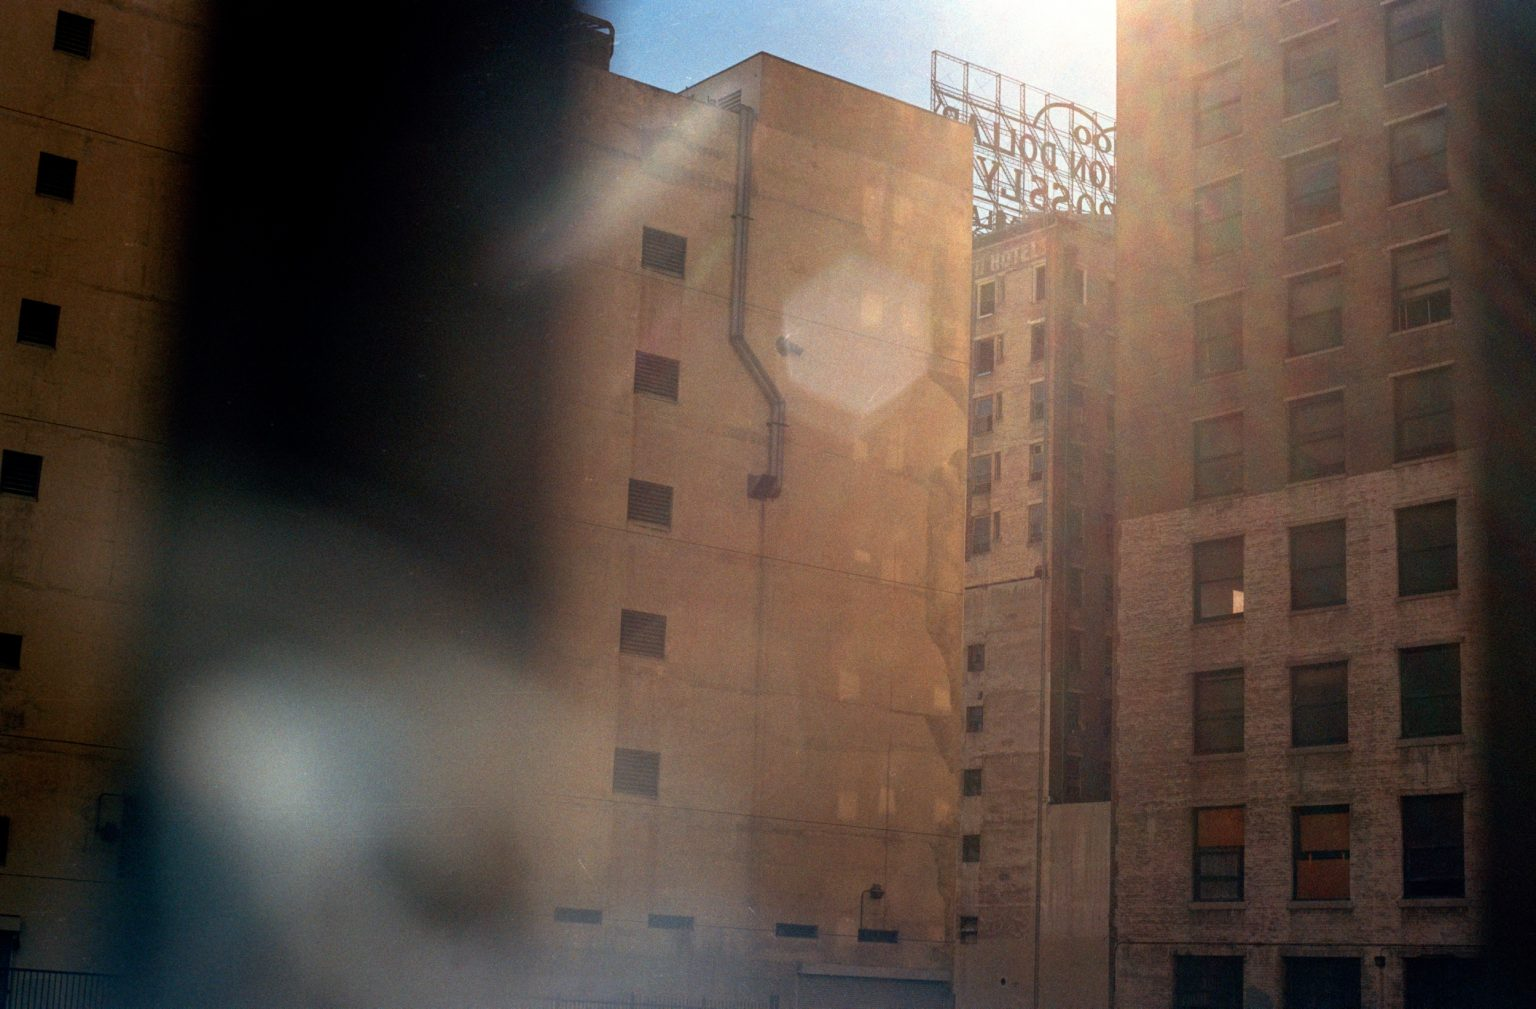 Million Dollar Hotel, famous hotel that nowdays mainly hosts homeless people. Skid Row, Los Angeles, United States 2004-2005